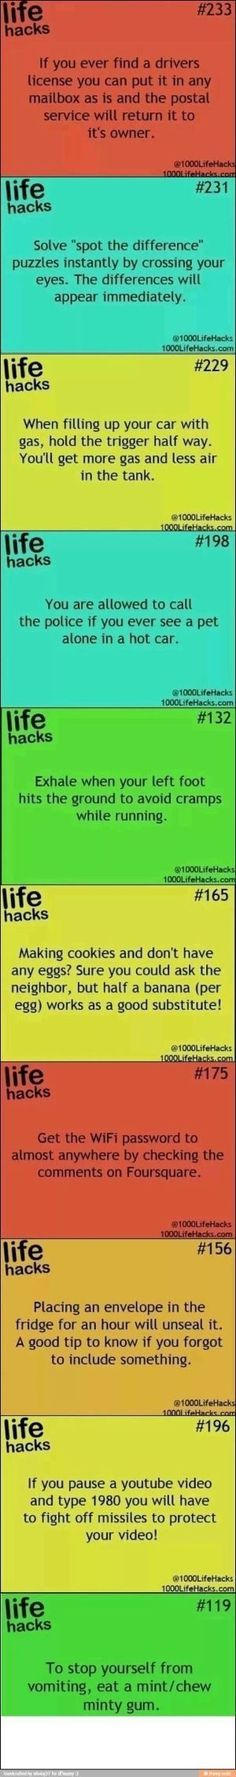 Endless Life Hacks: Life Hacks - Life hacks by LiveLoveLaughMyLife